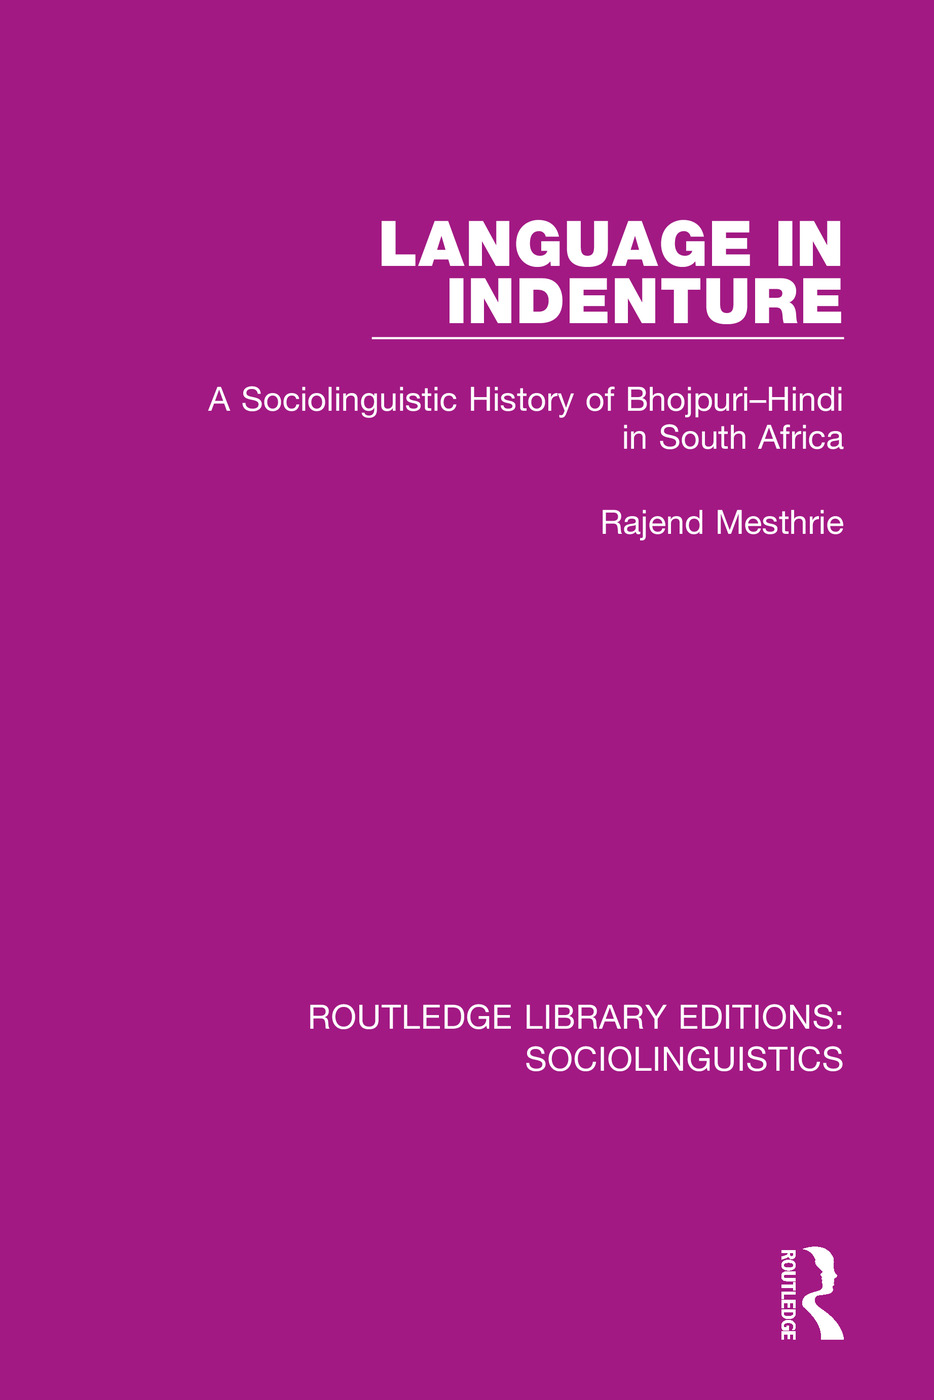 Language in Indenture: A Sociolinguistic History of Bhojpuri-Hindi in South Africa book cover